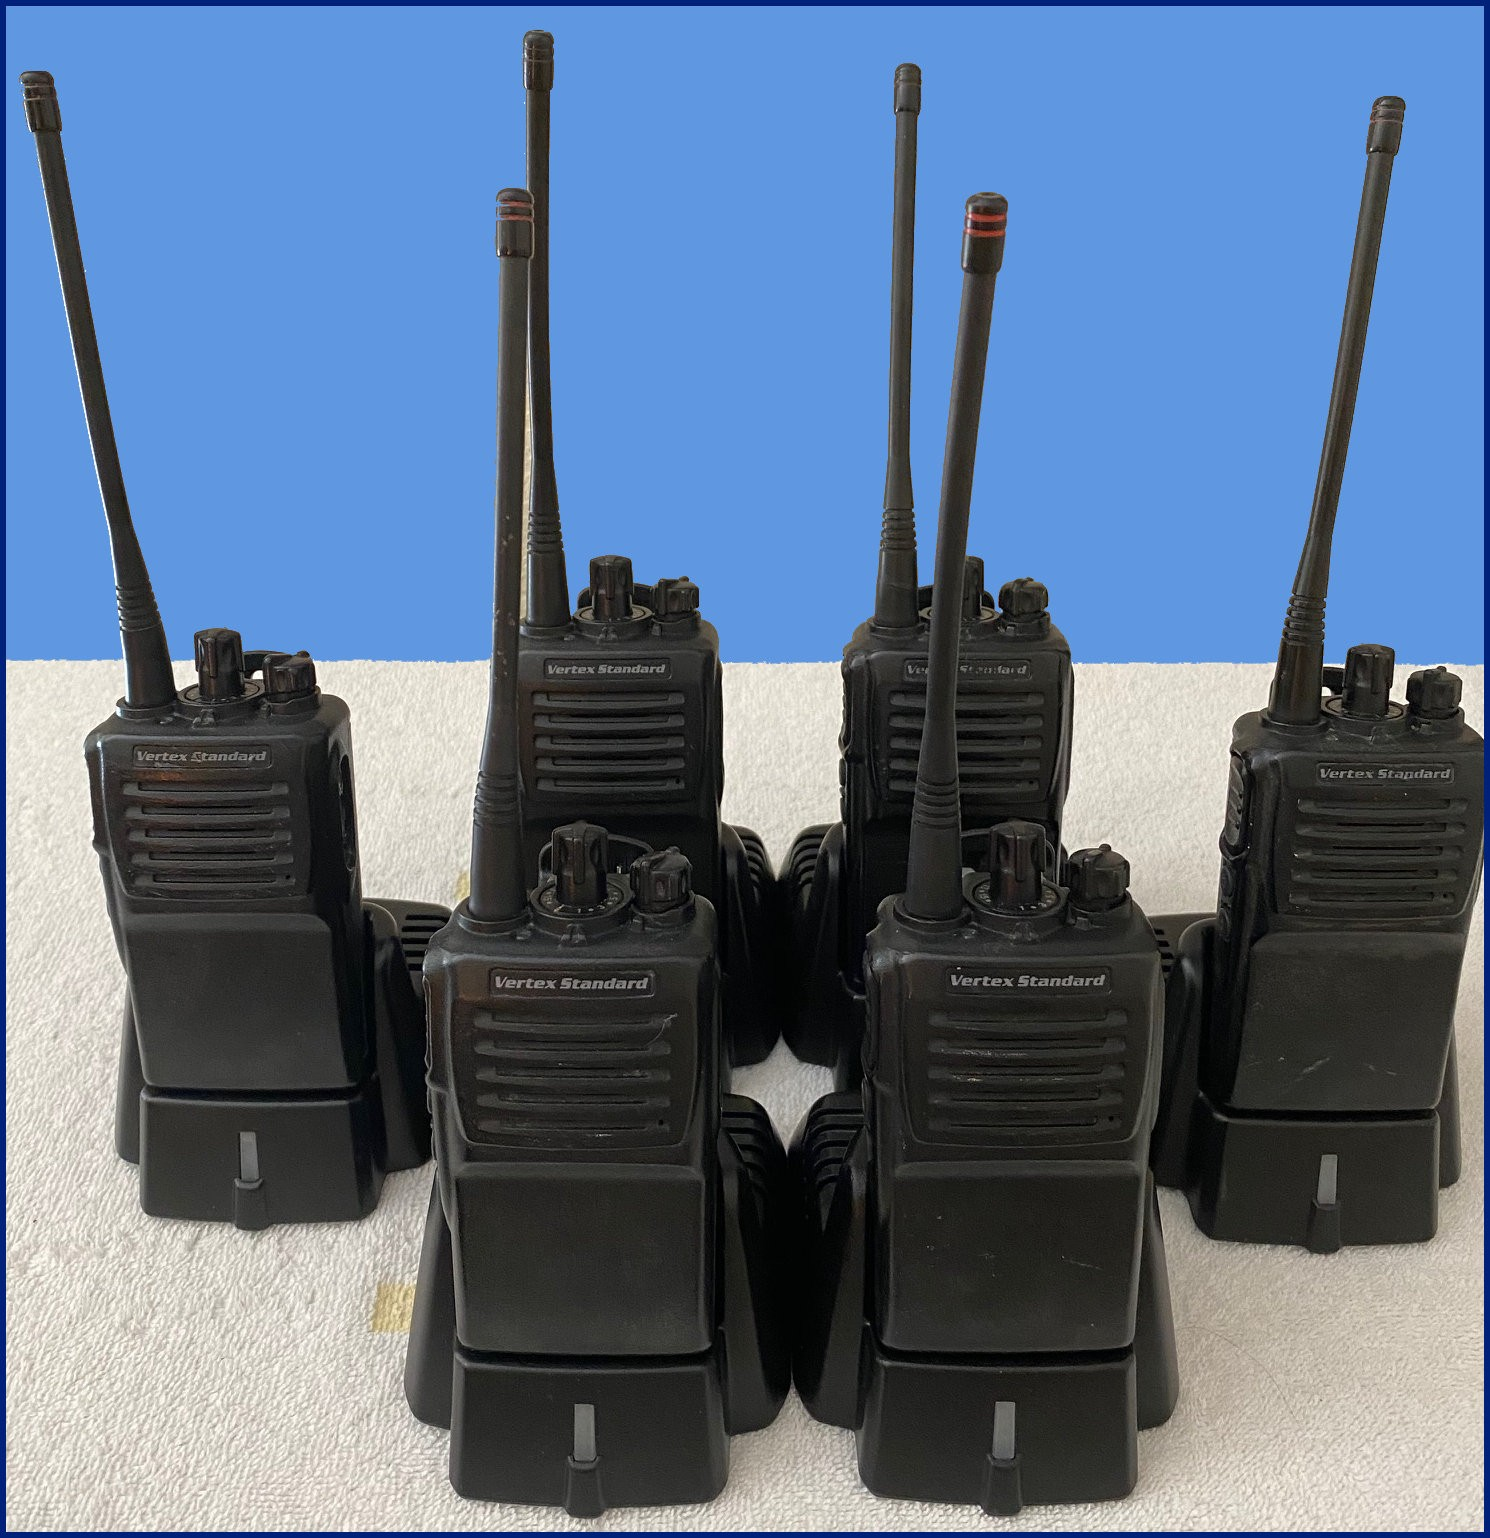 Used Radios 6 Pack with Desk Top Chargers